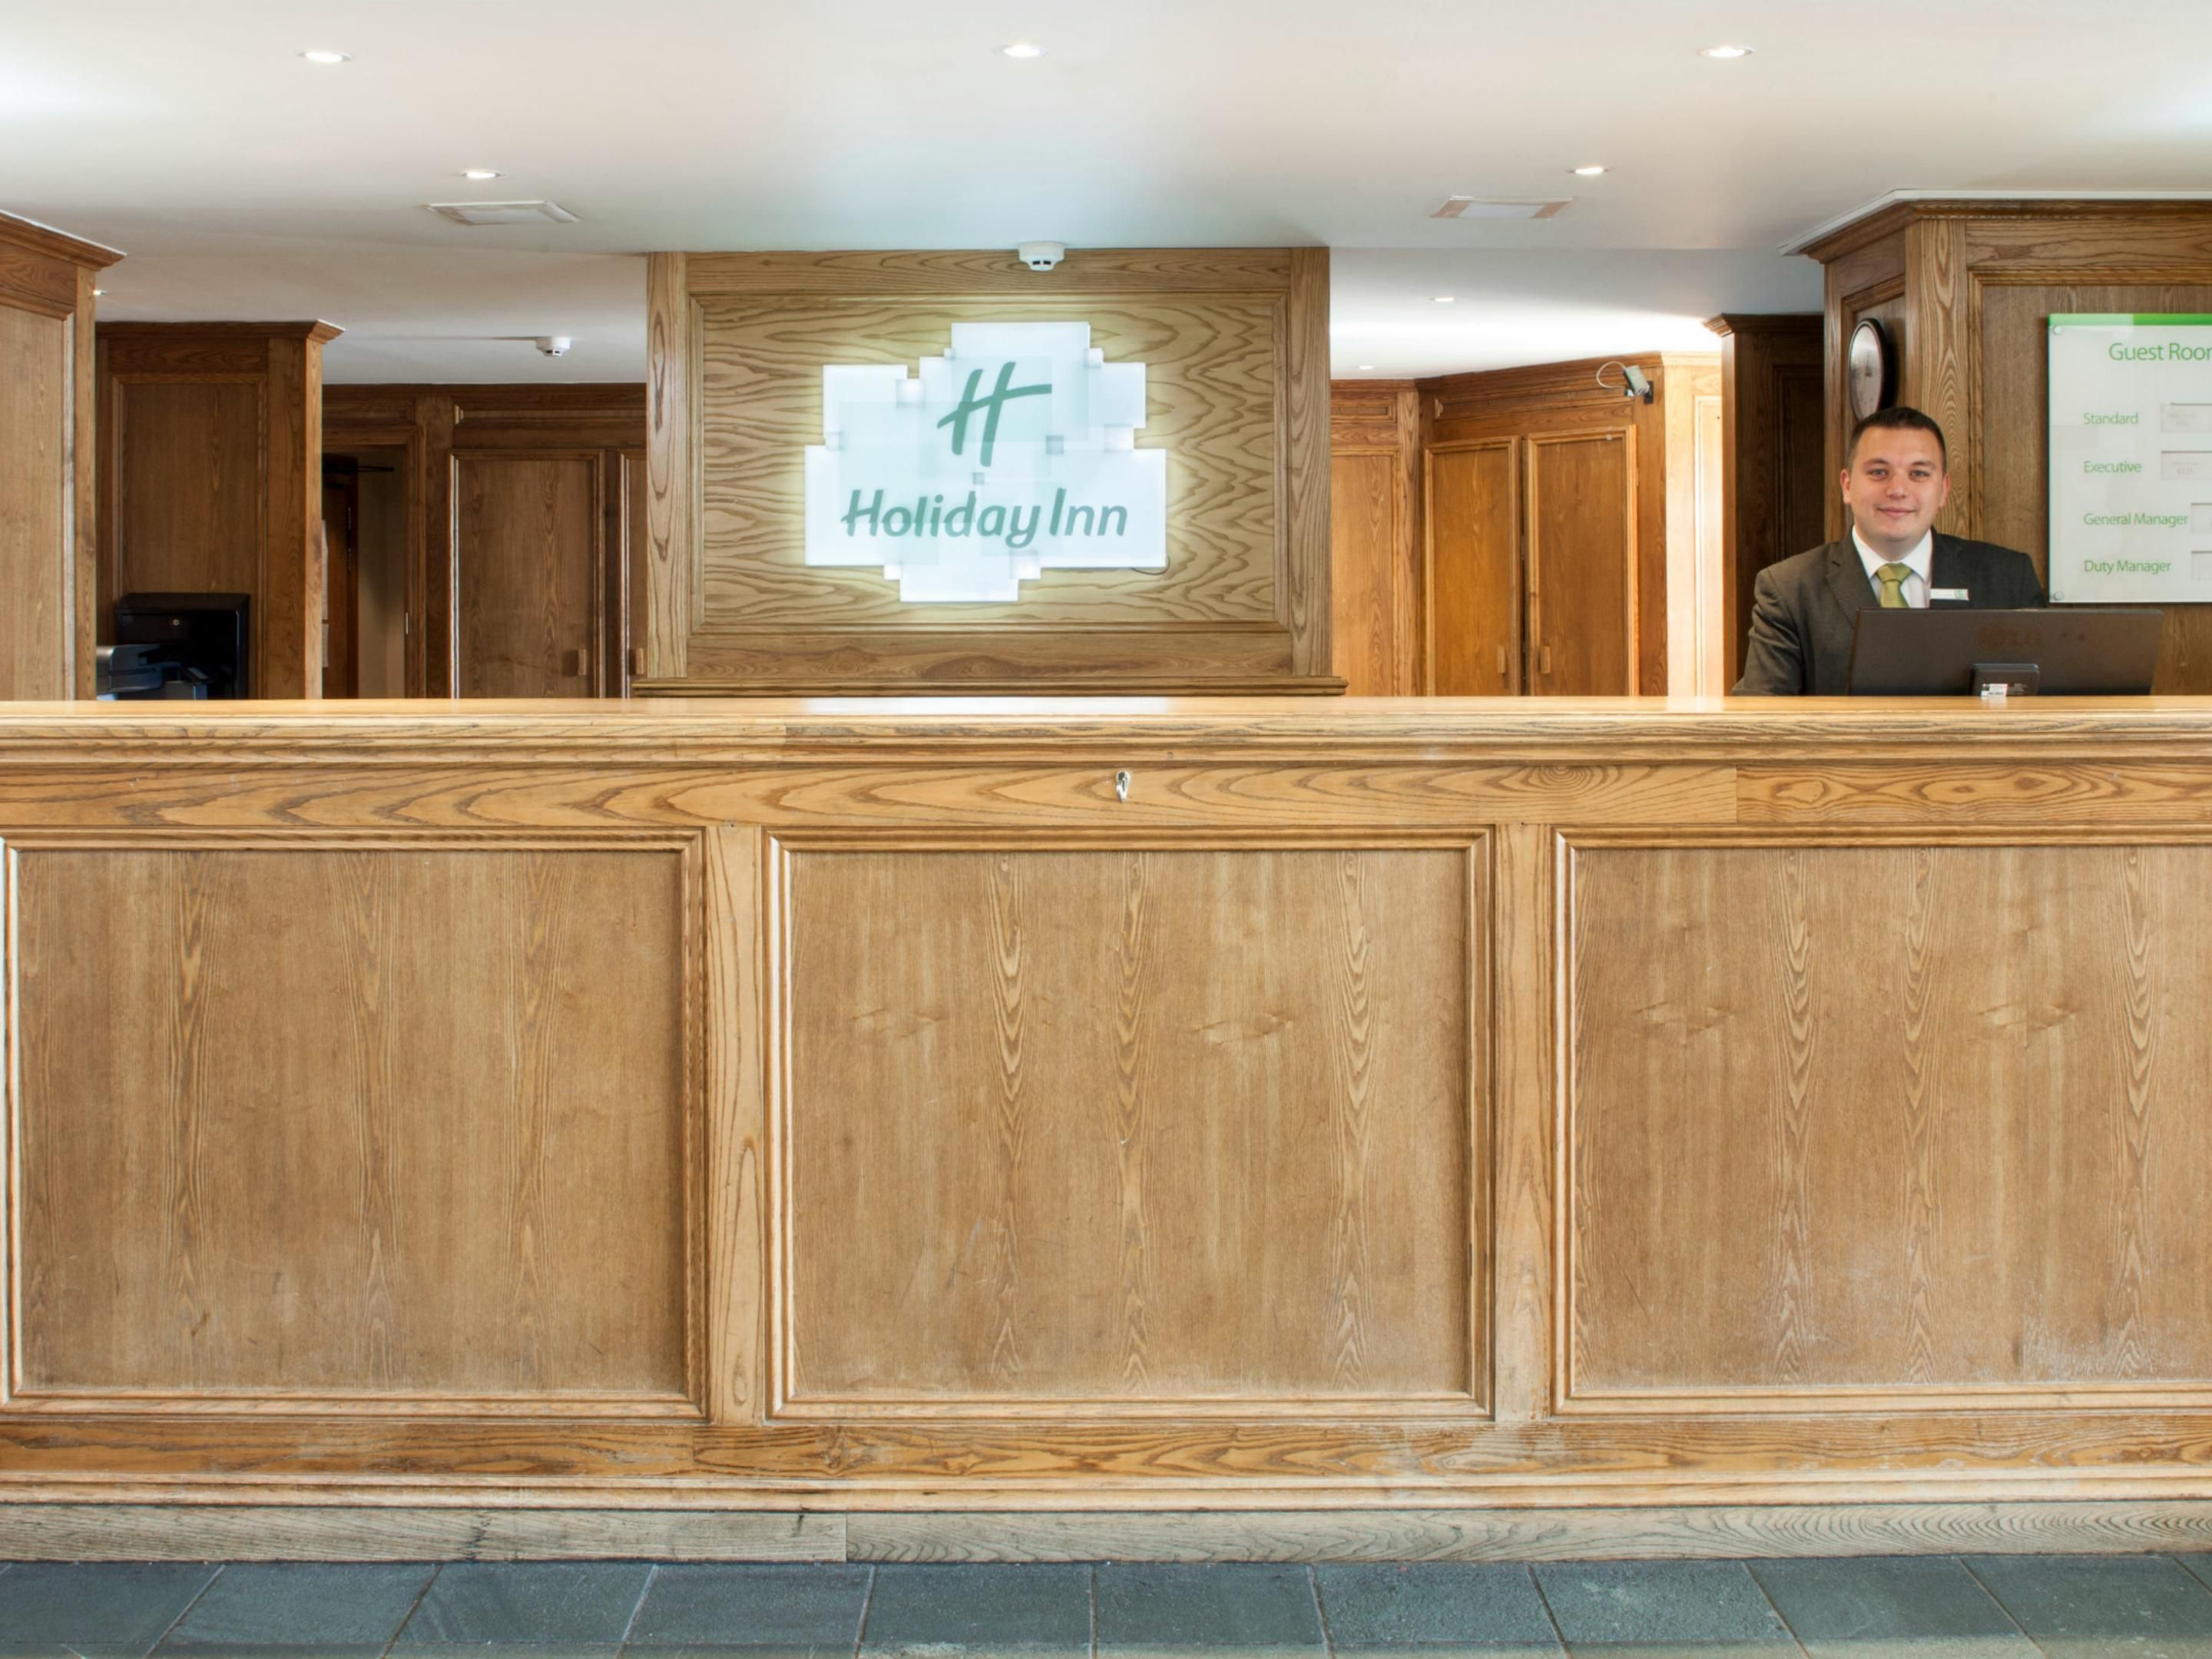 Our Friendly Staff are here ready to welcome you.